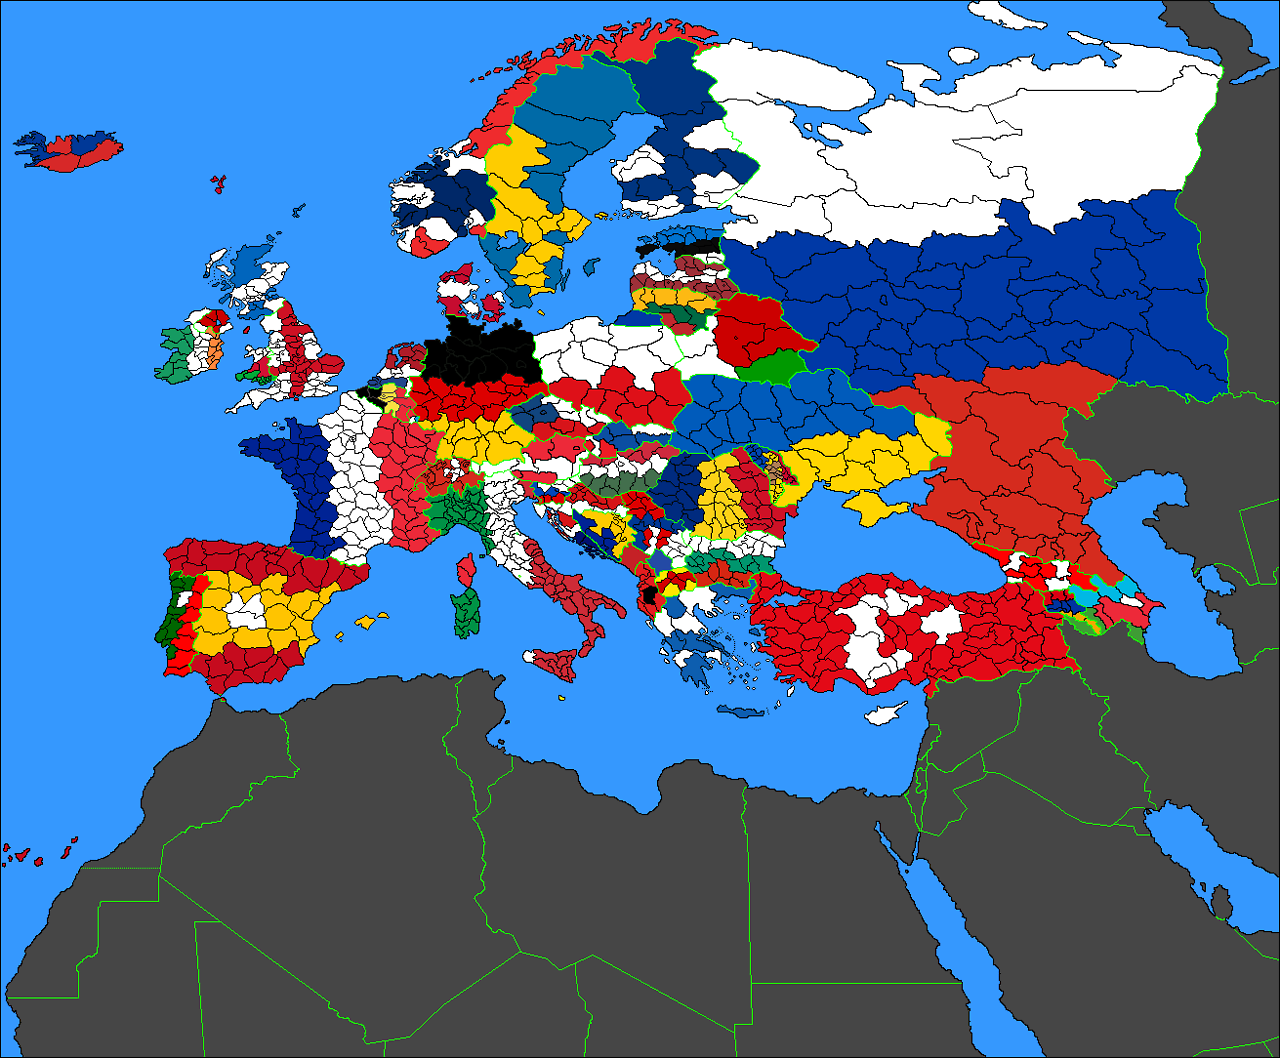 Flag Map of Europe Colored by Political